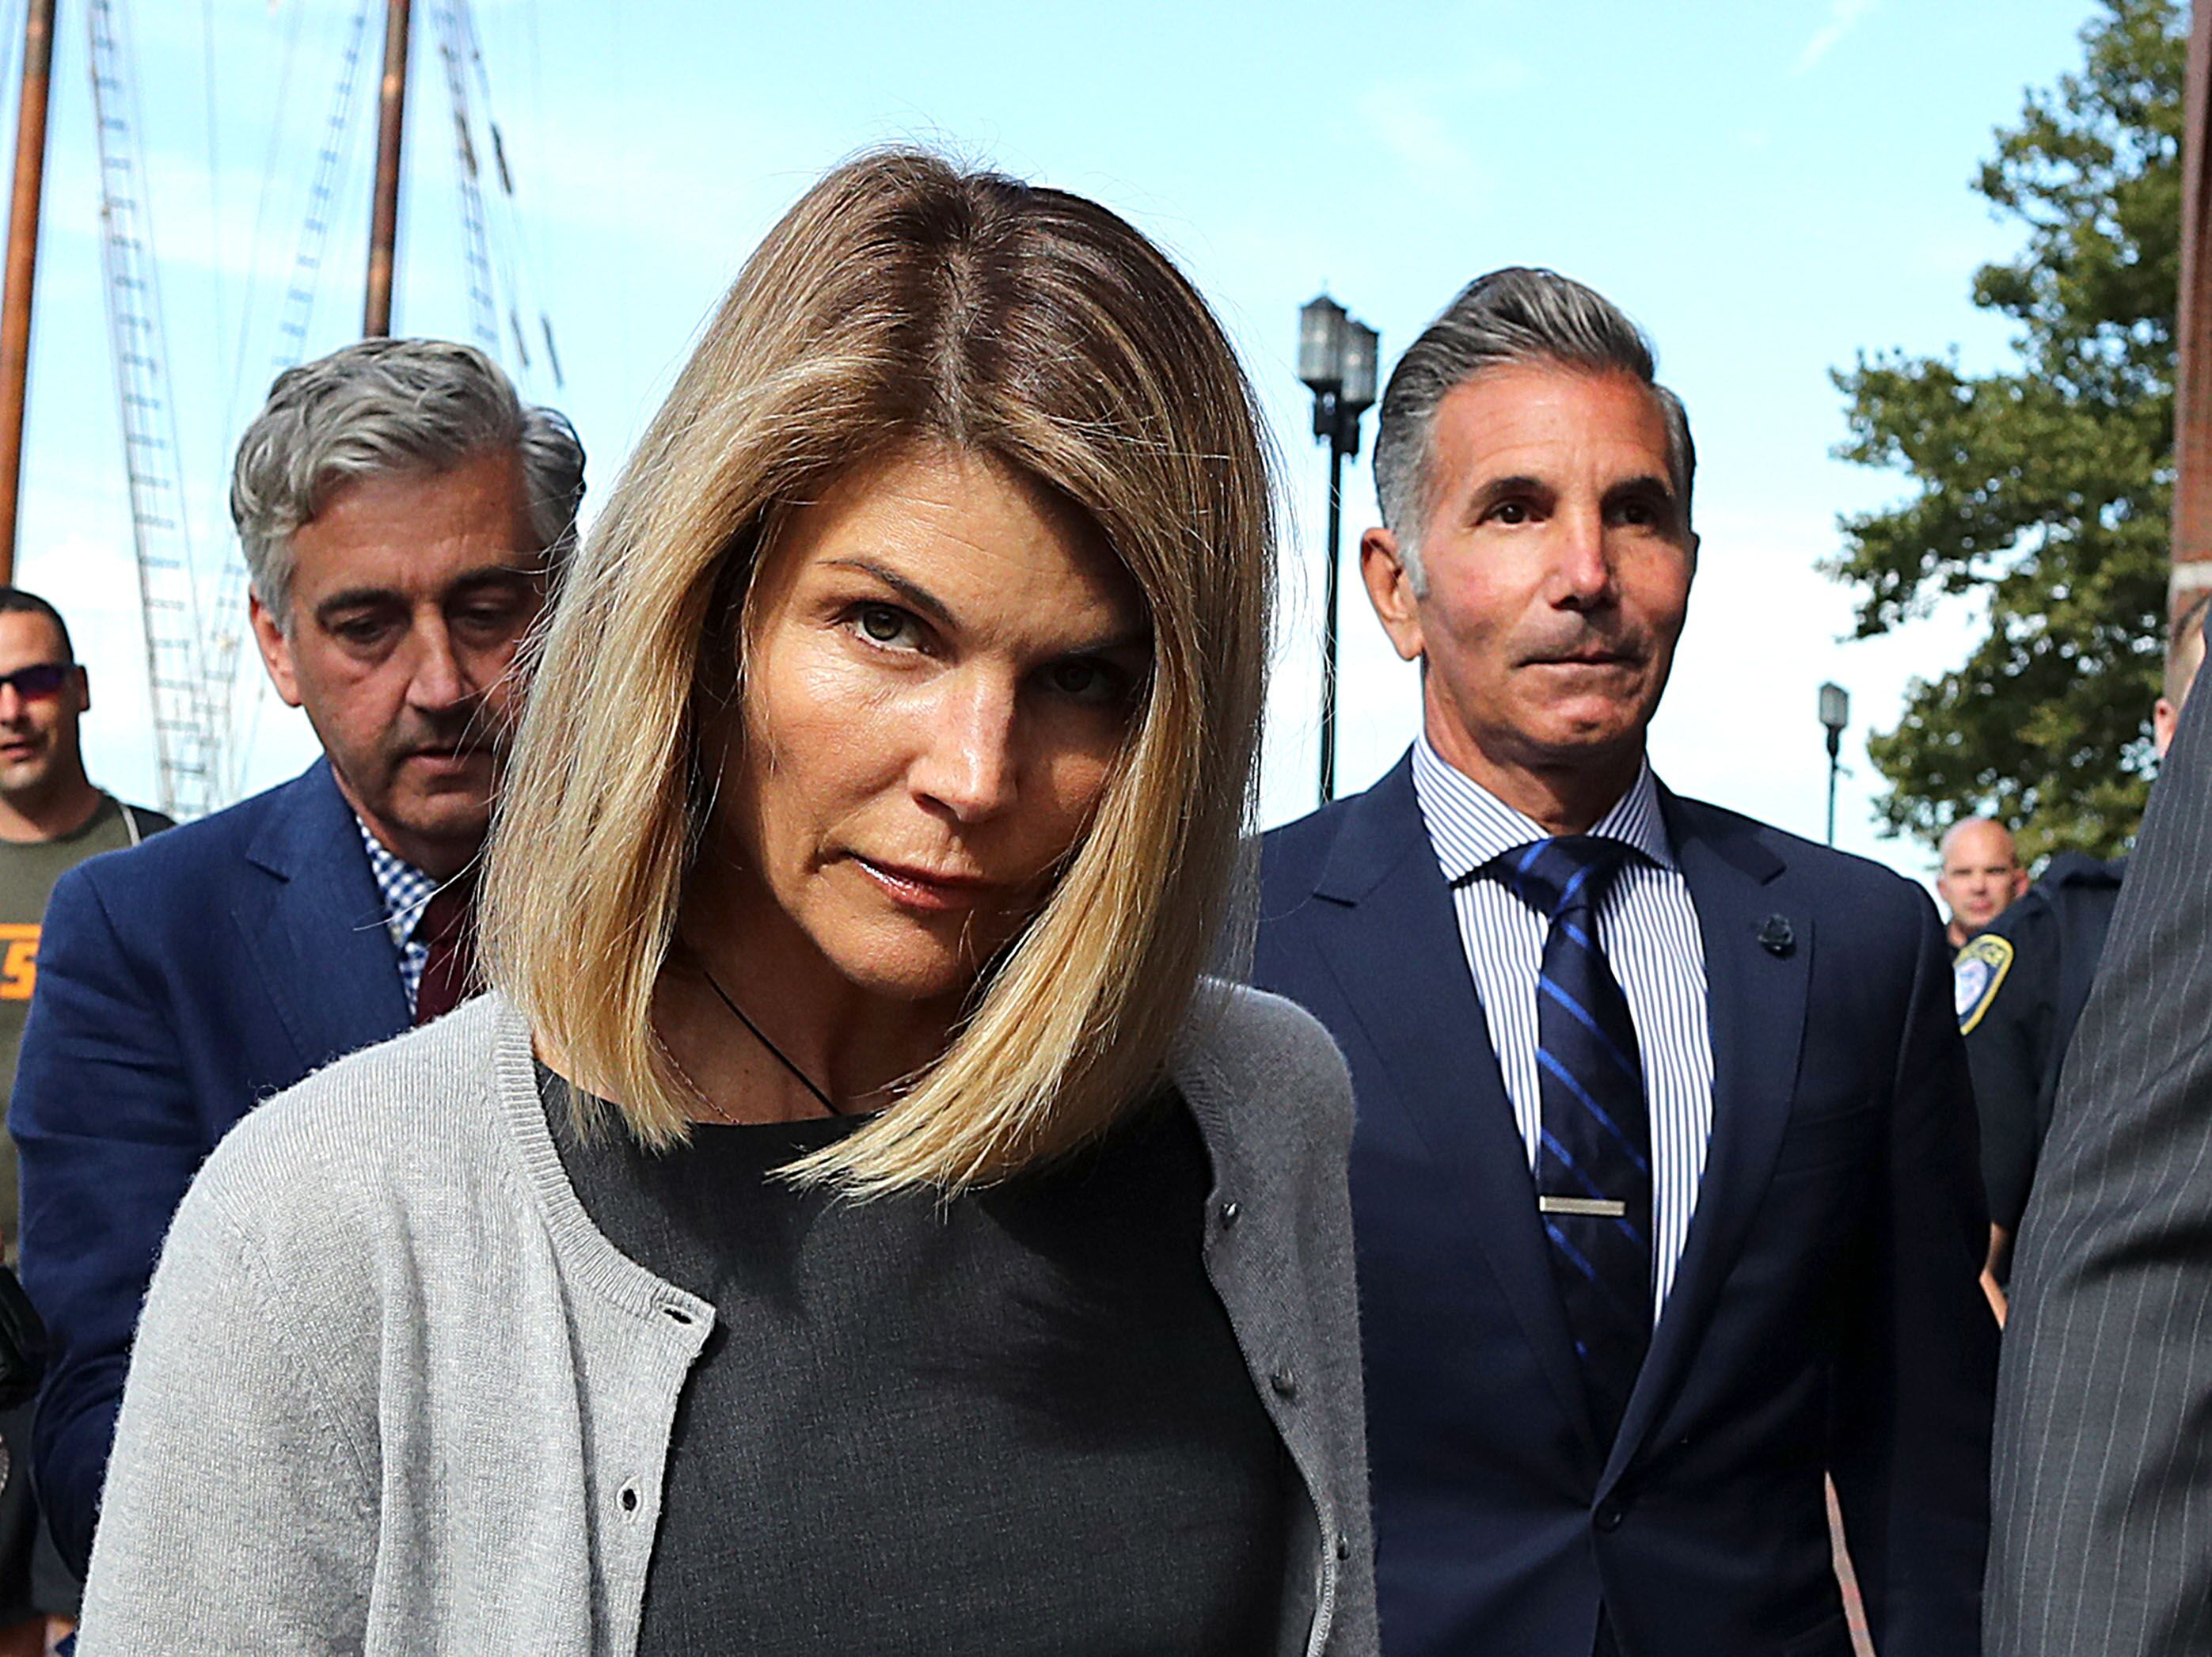 Lori Loughlin and her husband Mossimo Giannulli, right, leave the John Joseph Moakley United States Courthouse in Boston | Photo: Getty Images